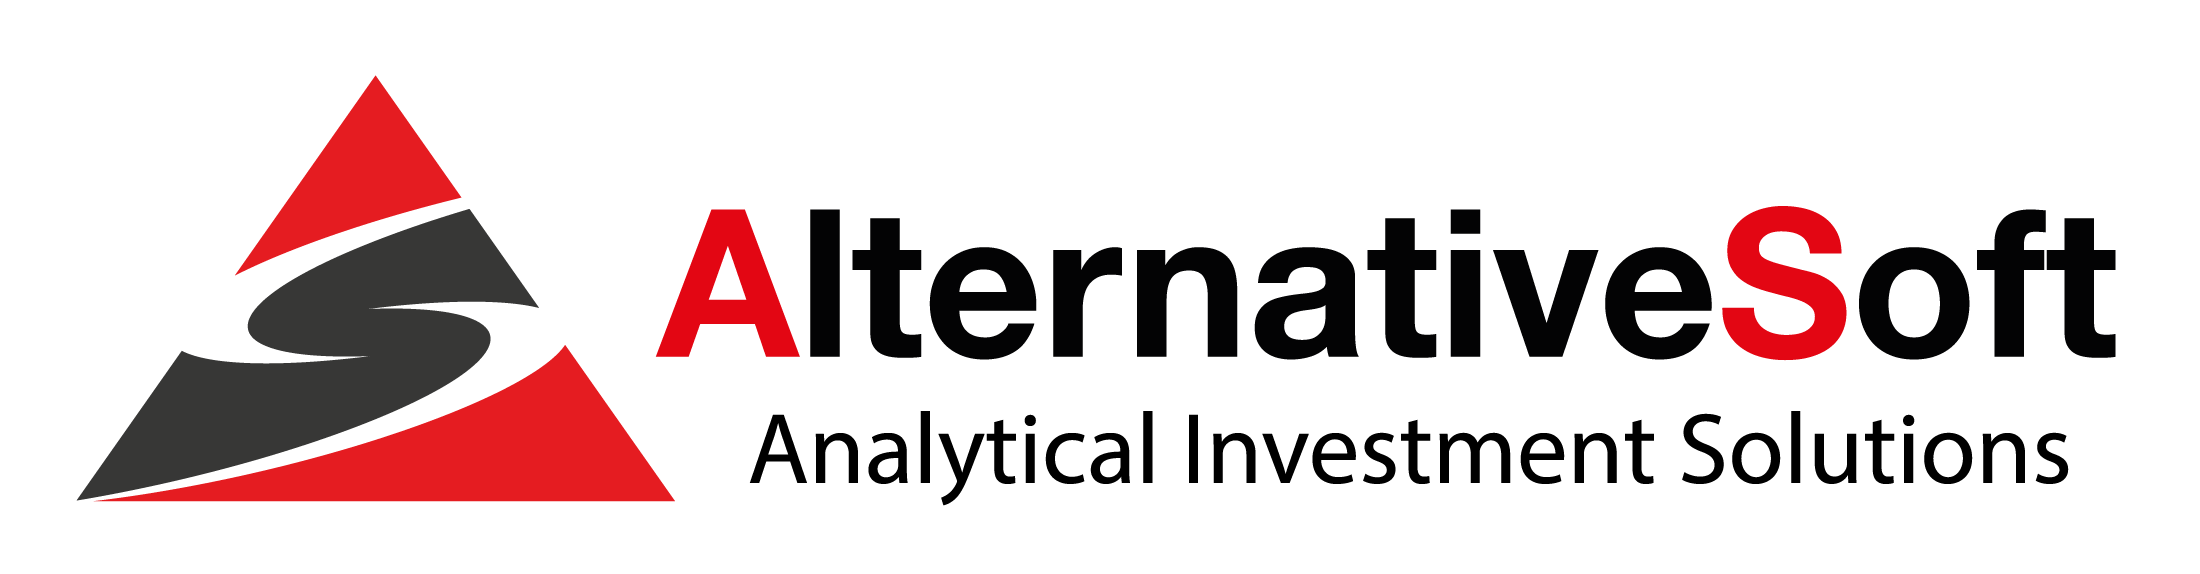 Logo of Alternative Soft, presenter at the Eurekahedge Asian Hedge Fund Awards 2019